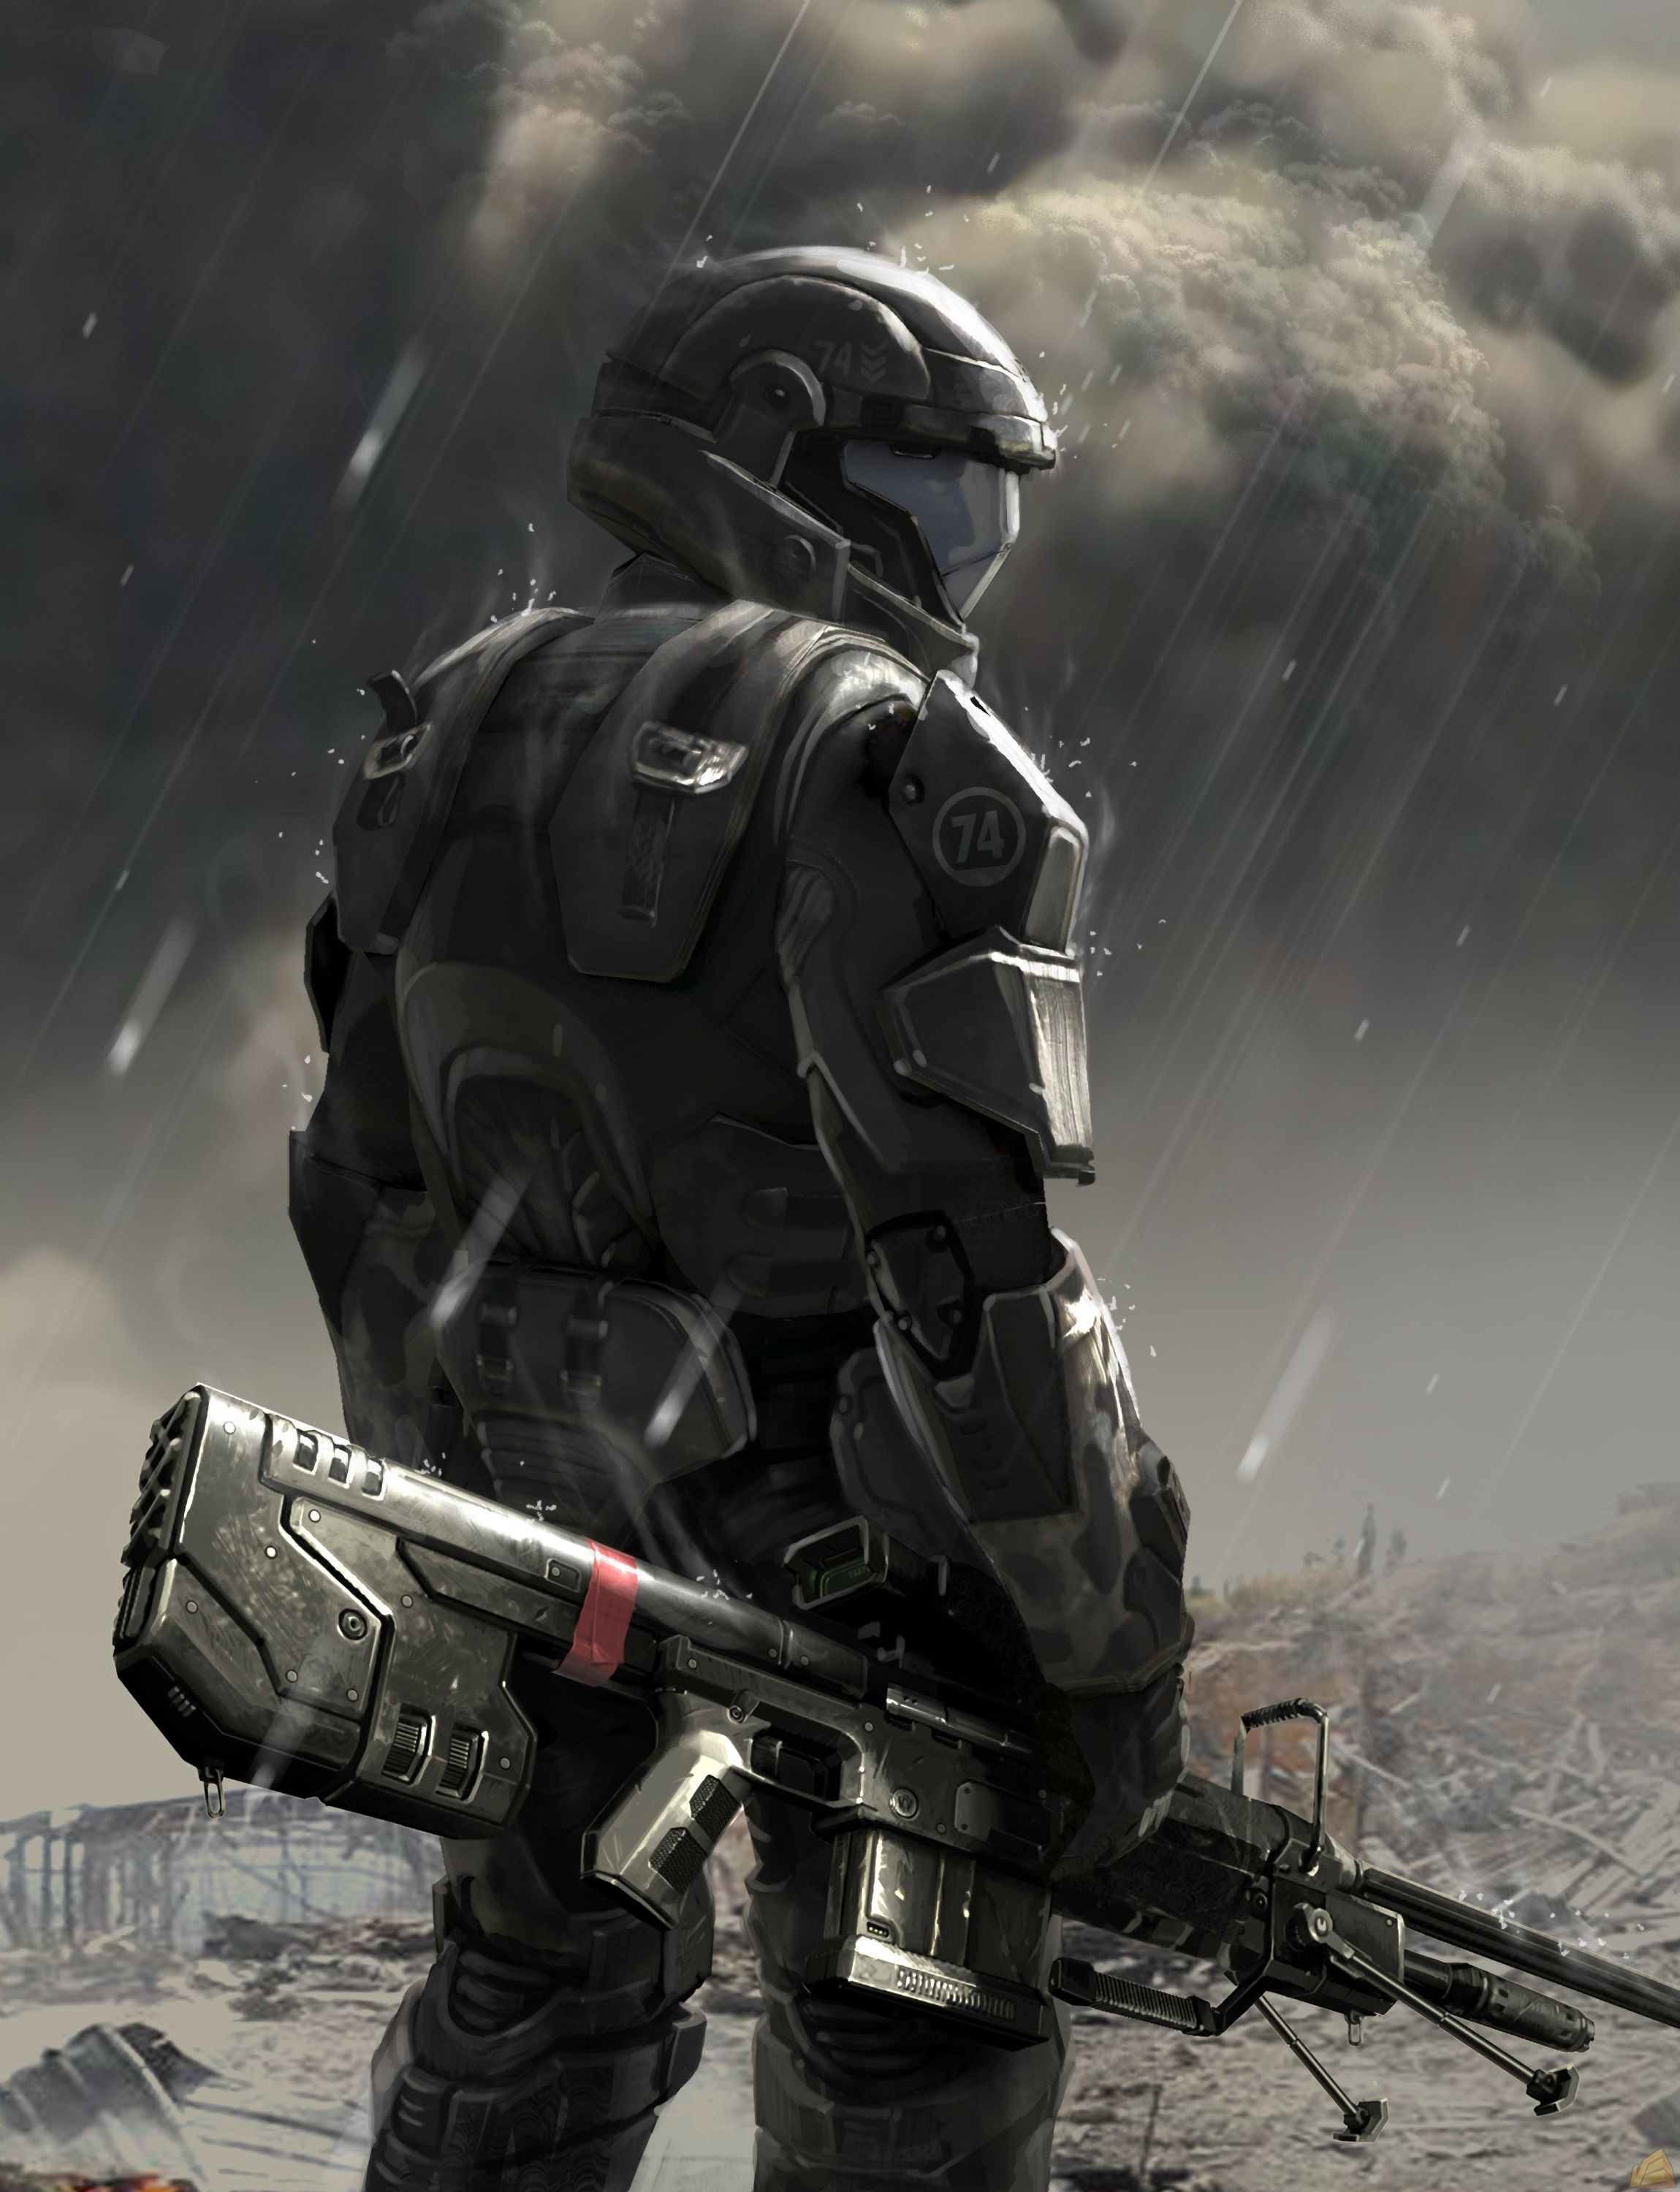 Halo odst concept halo pinterest gaming jackson and movie halo odst concept publicscrutiny Image collections